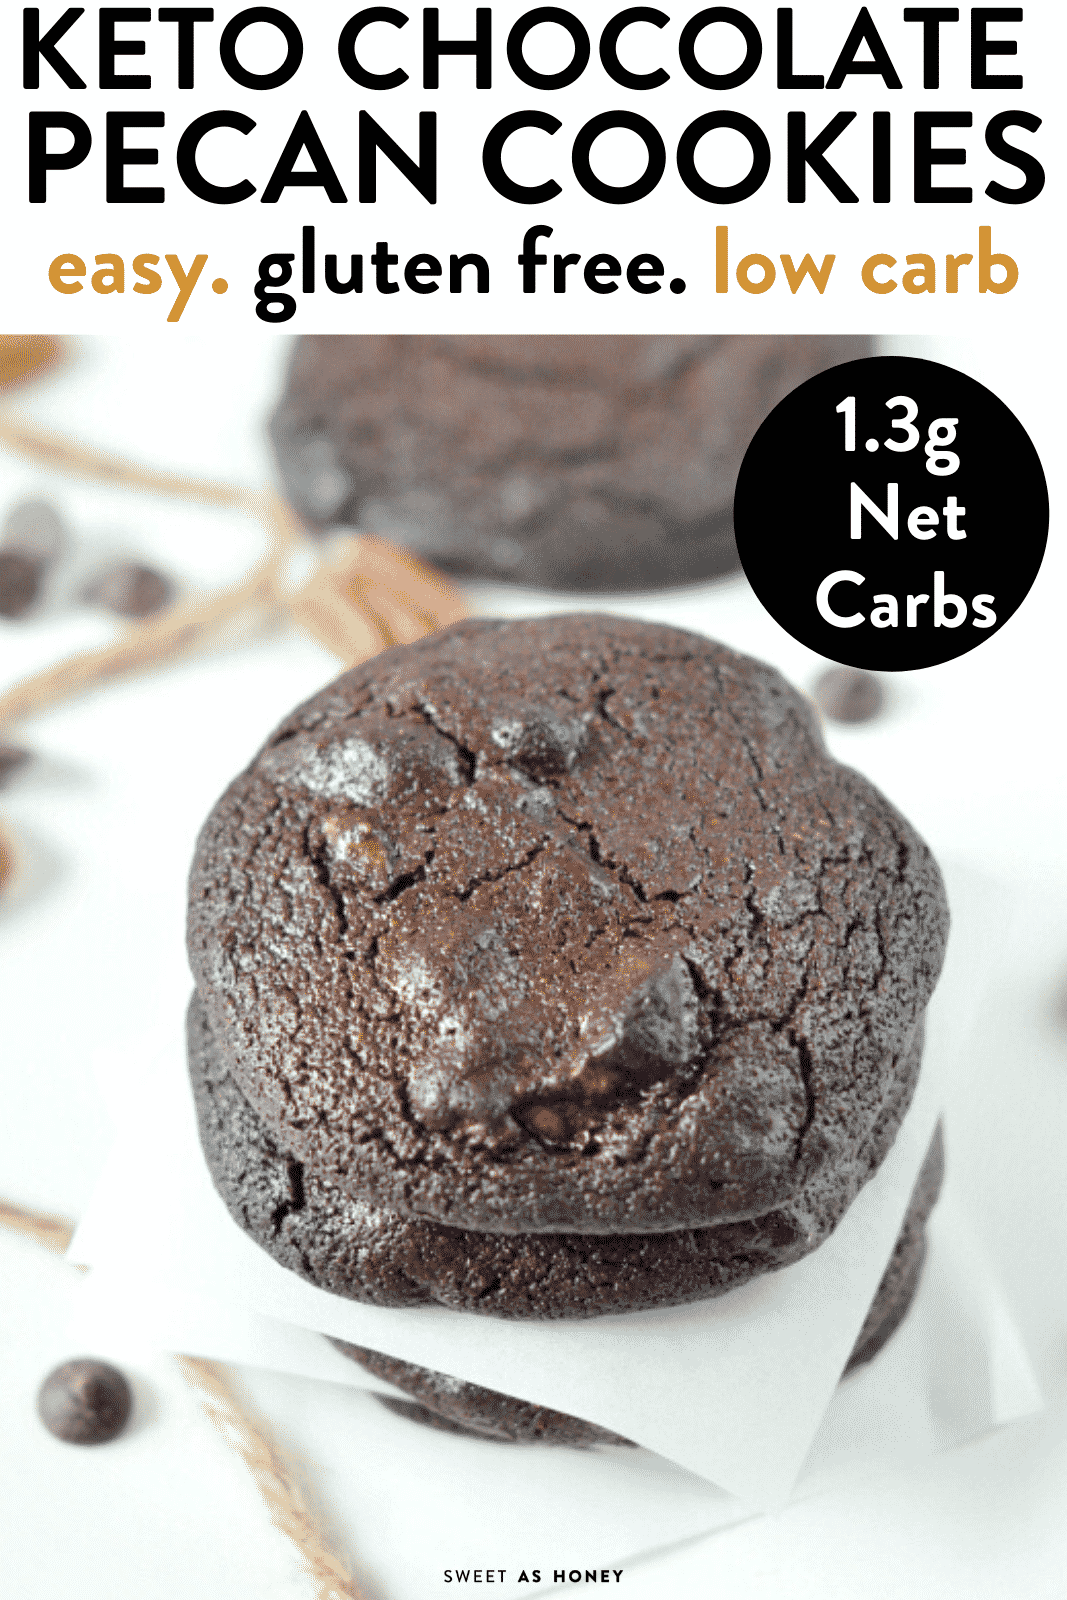 KETO CHOCOLATE COOKIES with Almond flour. An easy low carb treat with less 10 ingredients. #ketocookies #ketochocolate #ketobest #ketogenicdiet #ketorecipes #ketodiet #lowcarbdiet #lowcarbrecipes #lowcarbcookies #glutenfreecookies #ketorecipesforbeginners #ketoeasy #keto #ketosis #ketones #ketoalmondflour